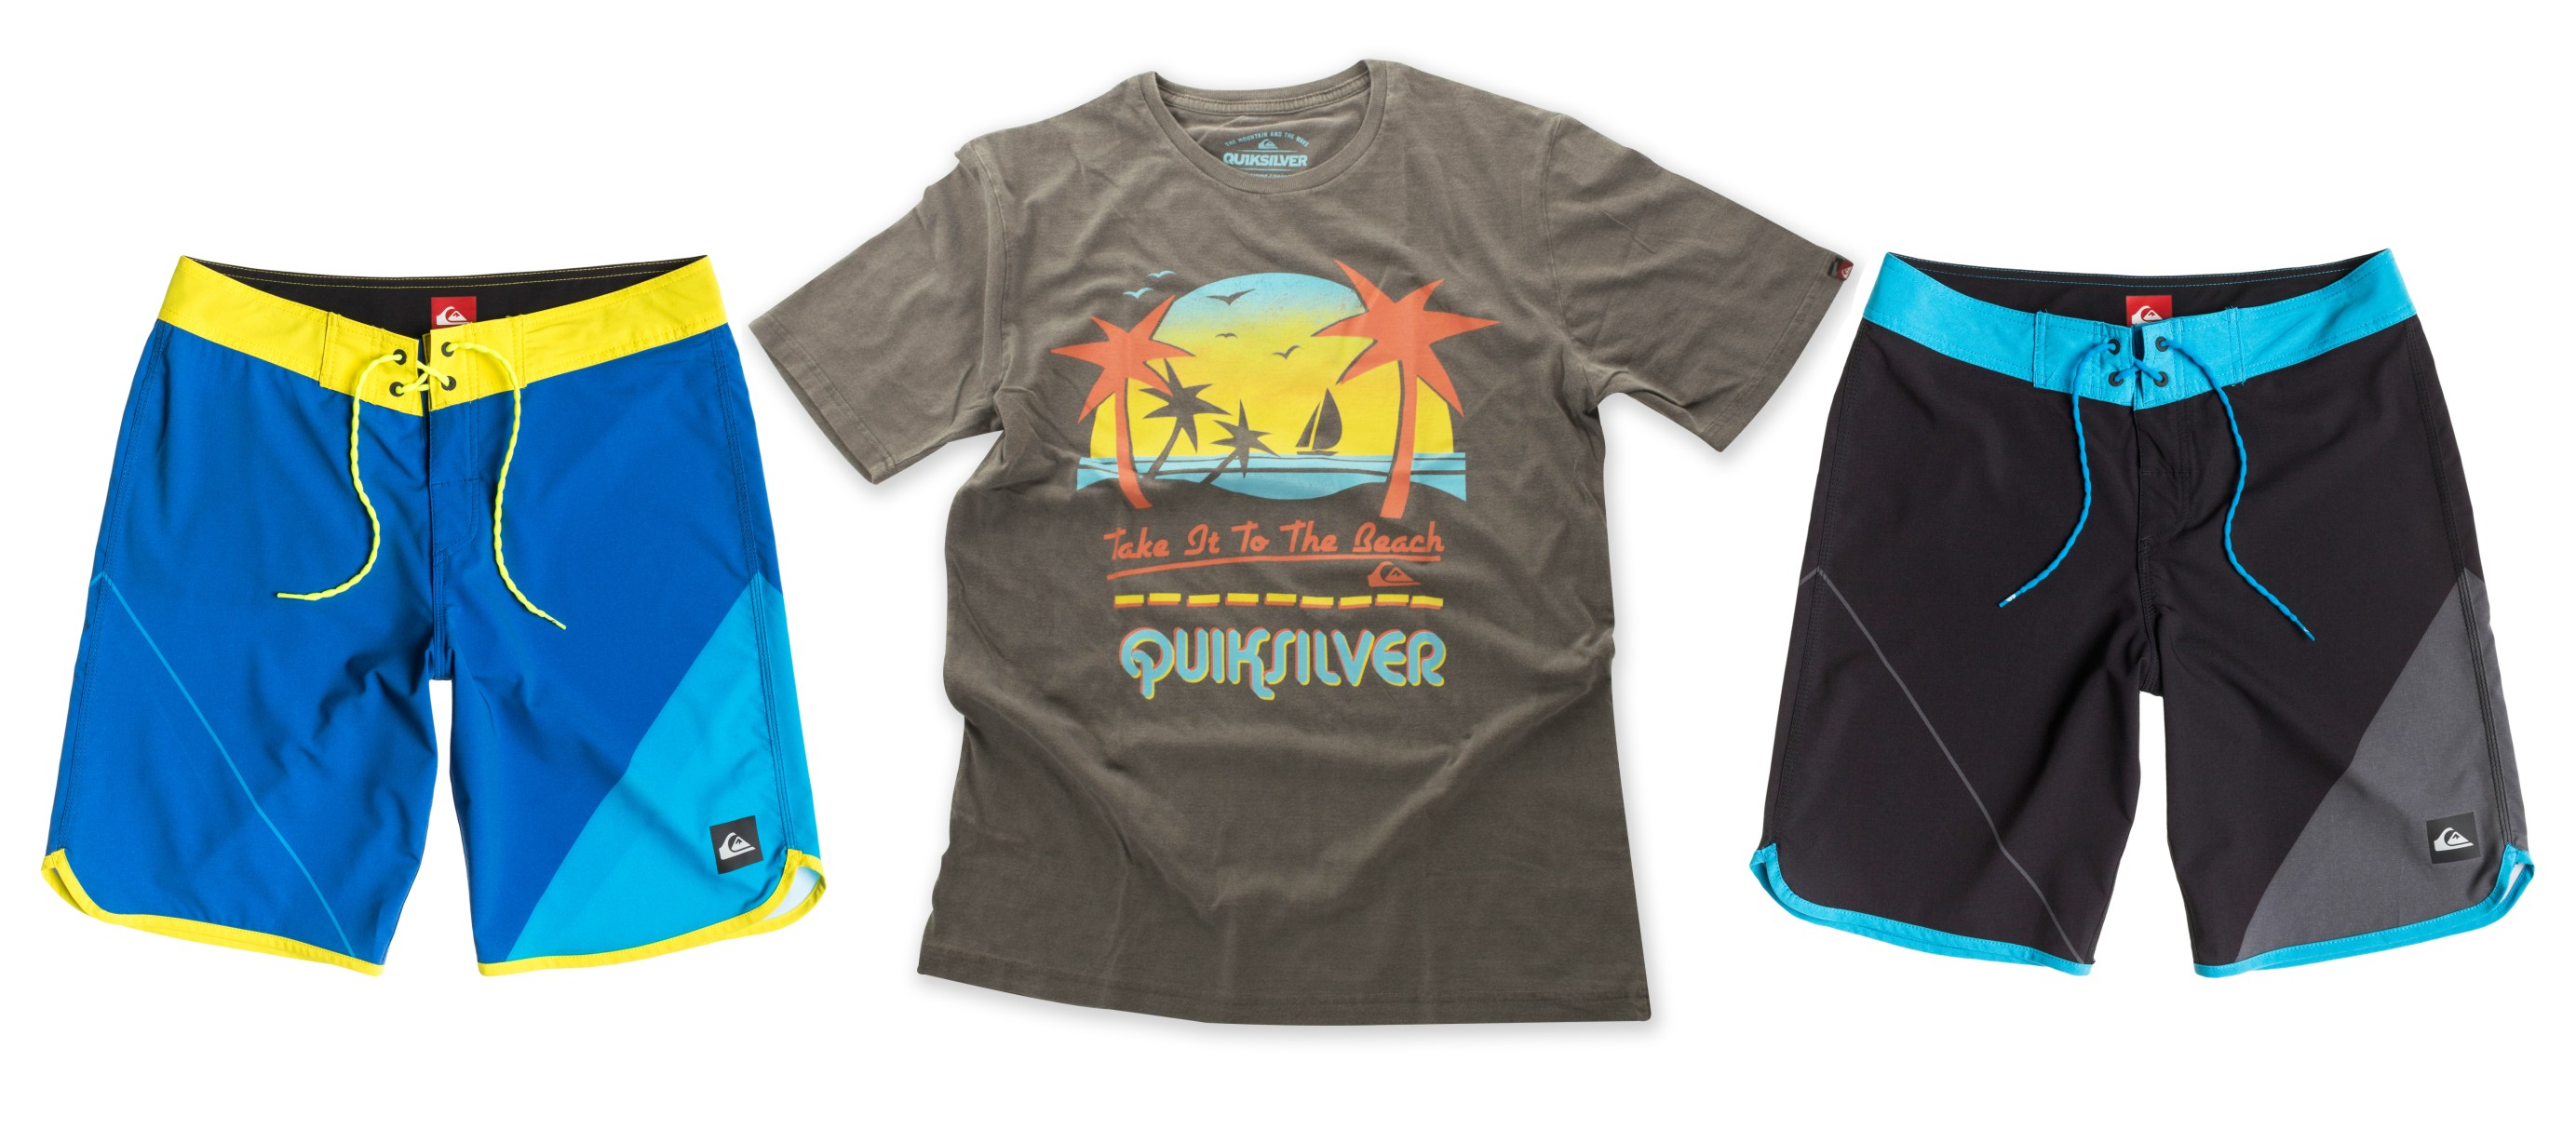 The Quiksilver summer range is here